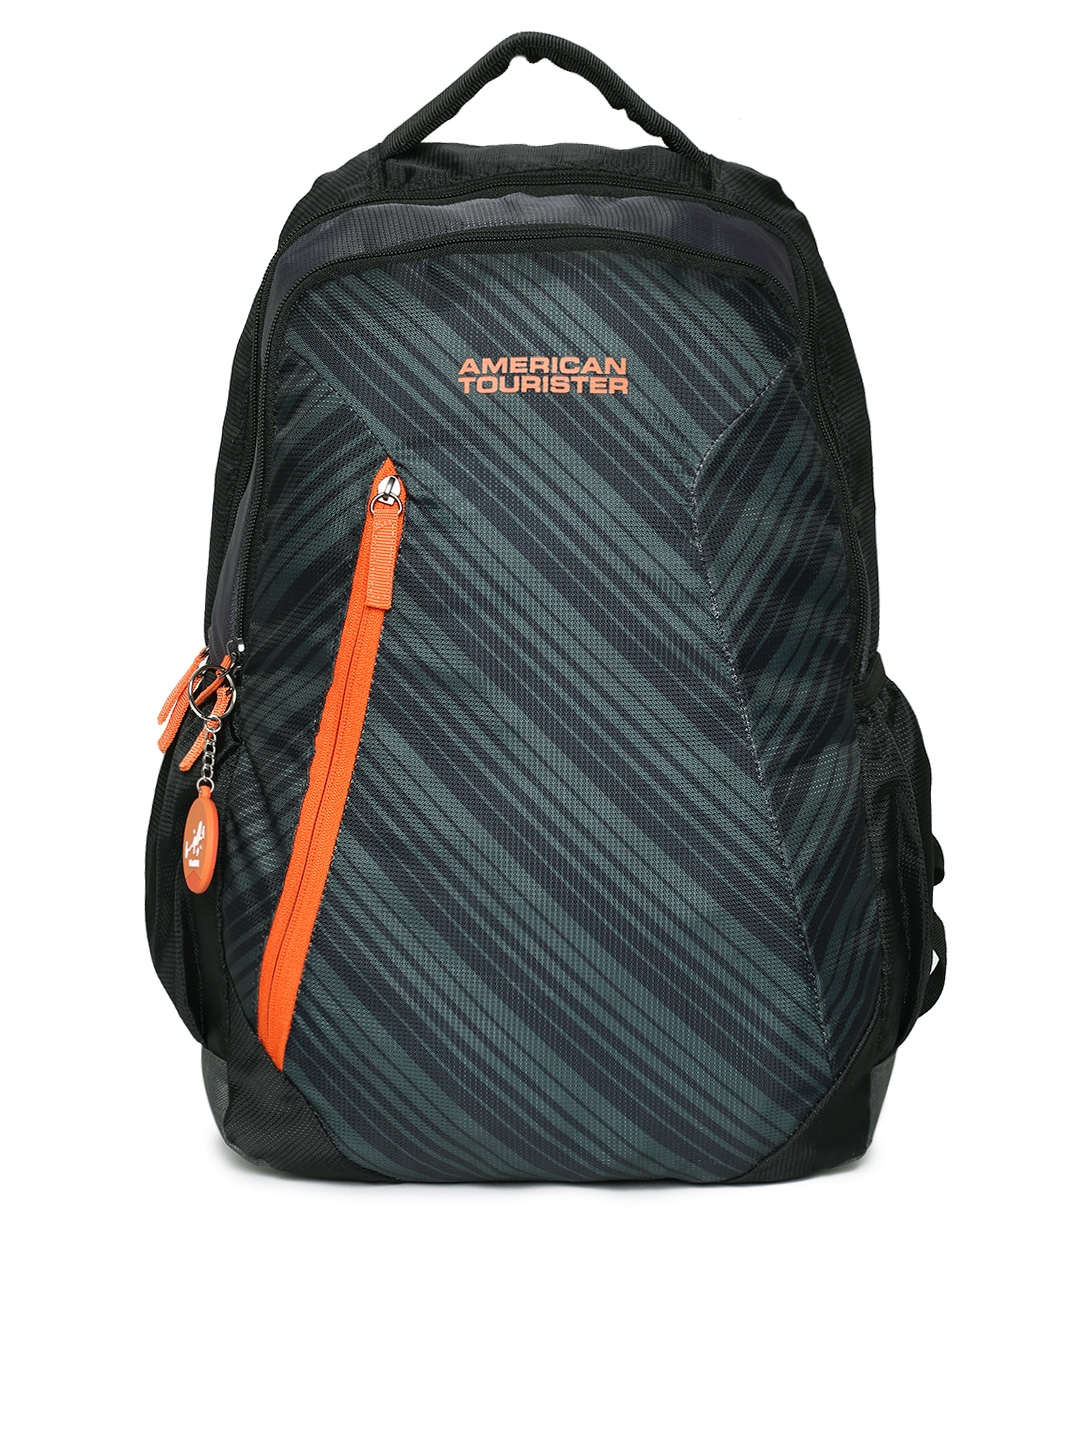 0e7a23b725c Buy AMERICAN TOURISTER Unisex Black Printed RAVE SCHOOL Backpack ...